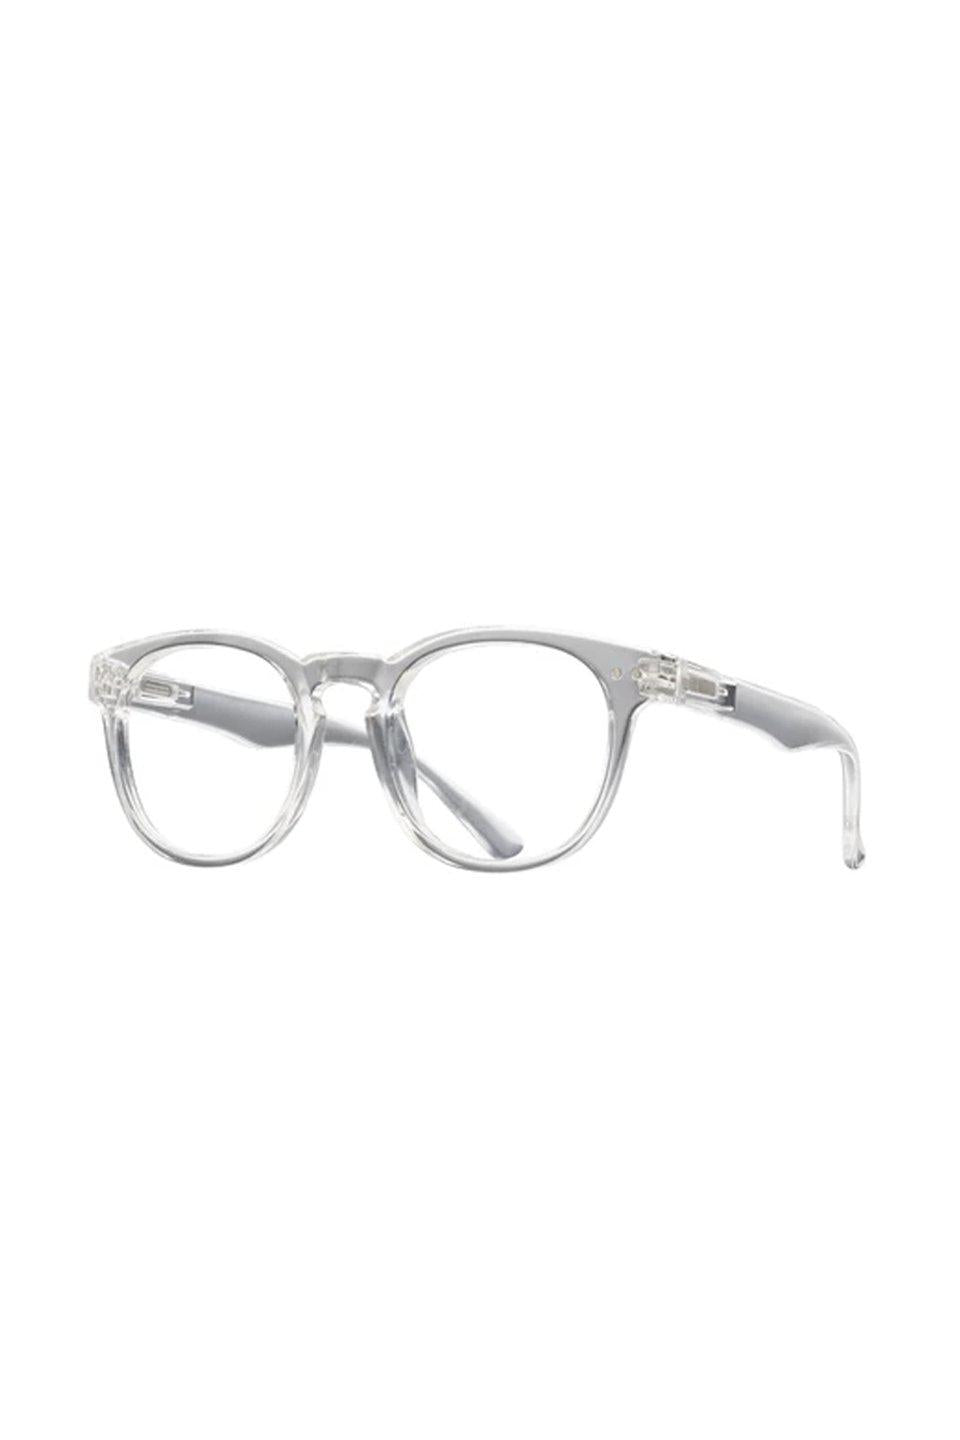 Indie Clear / Unisex Blue Light Glasses - Gallery 512 Boutique